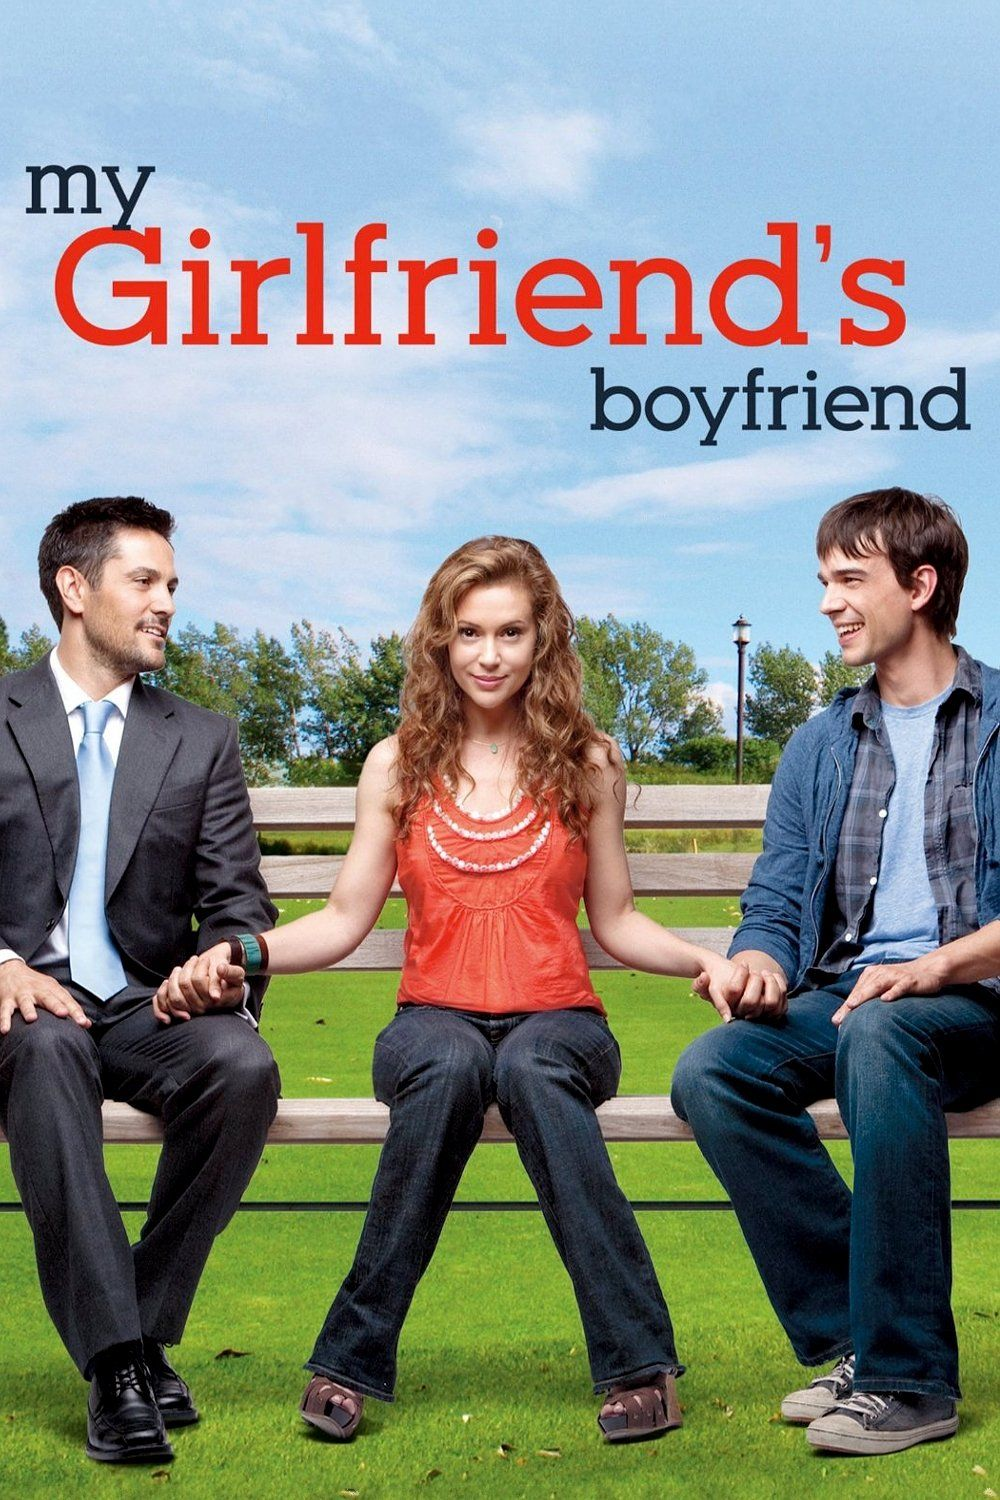 Best movies to watch with girlfriend